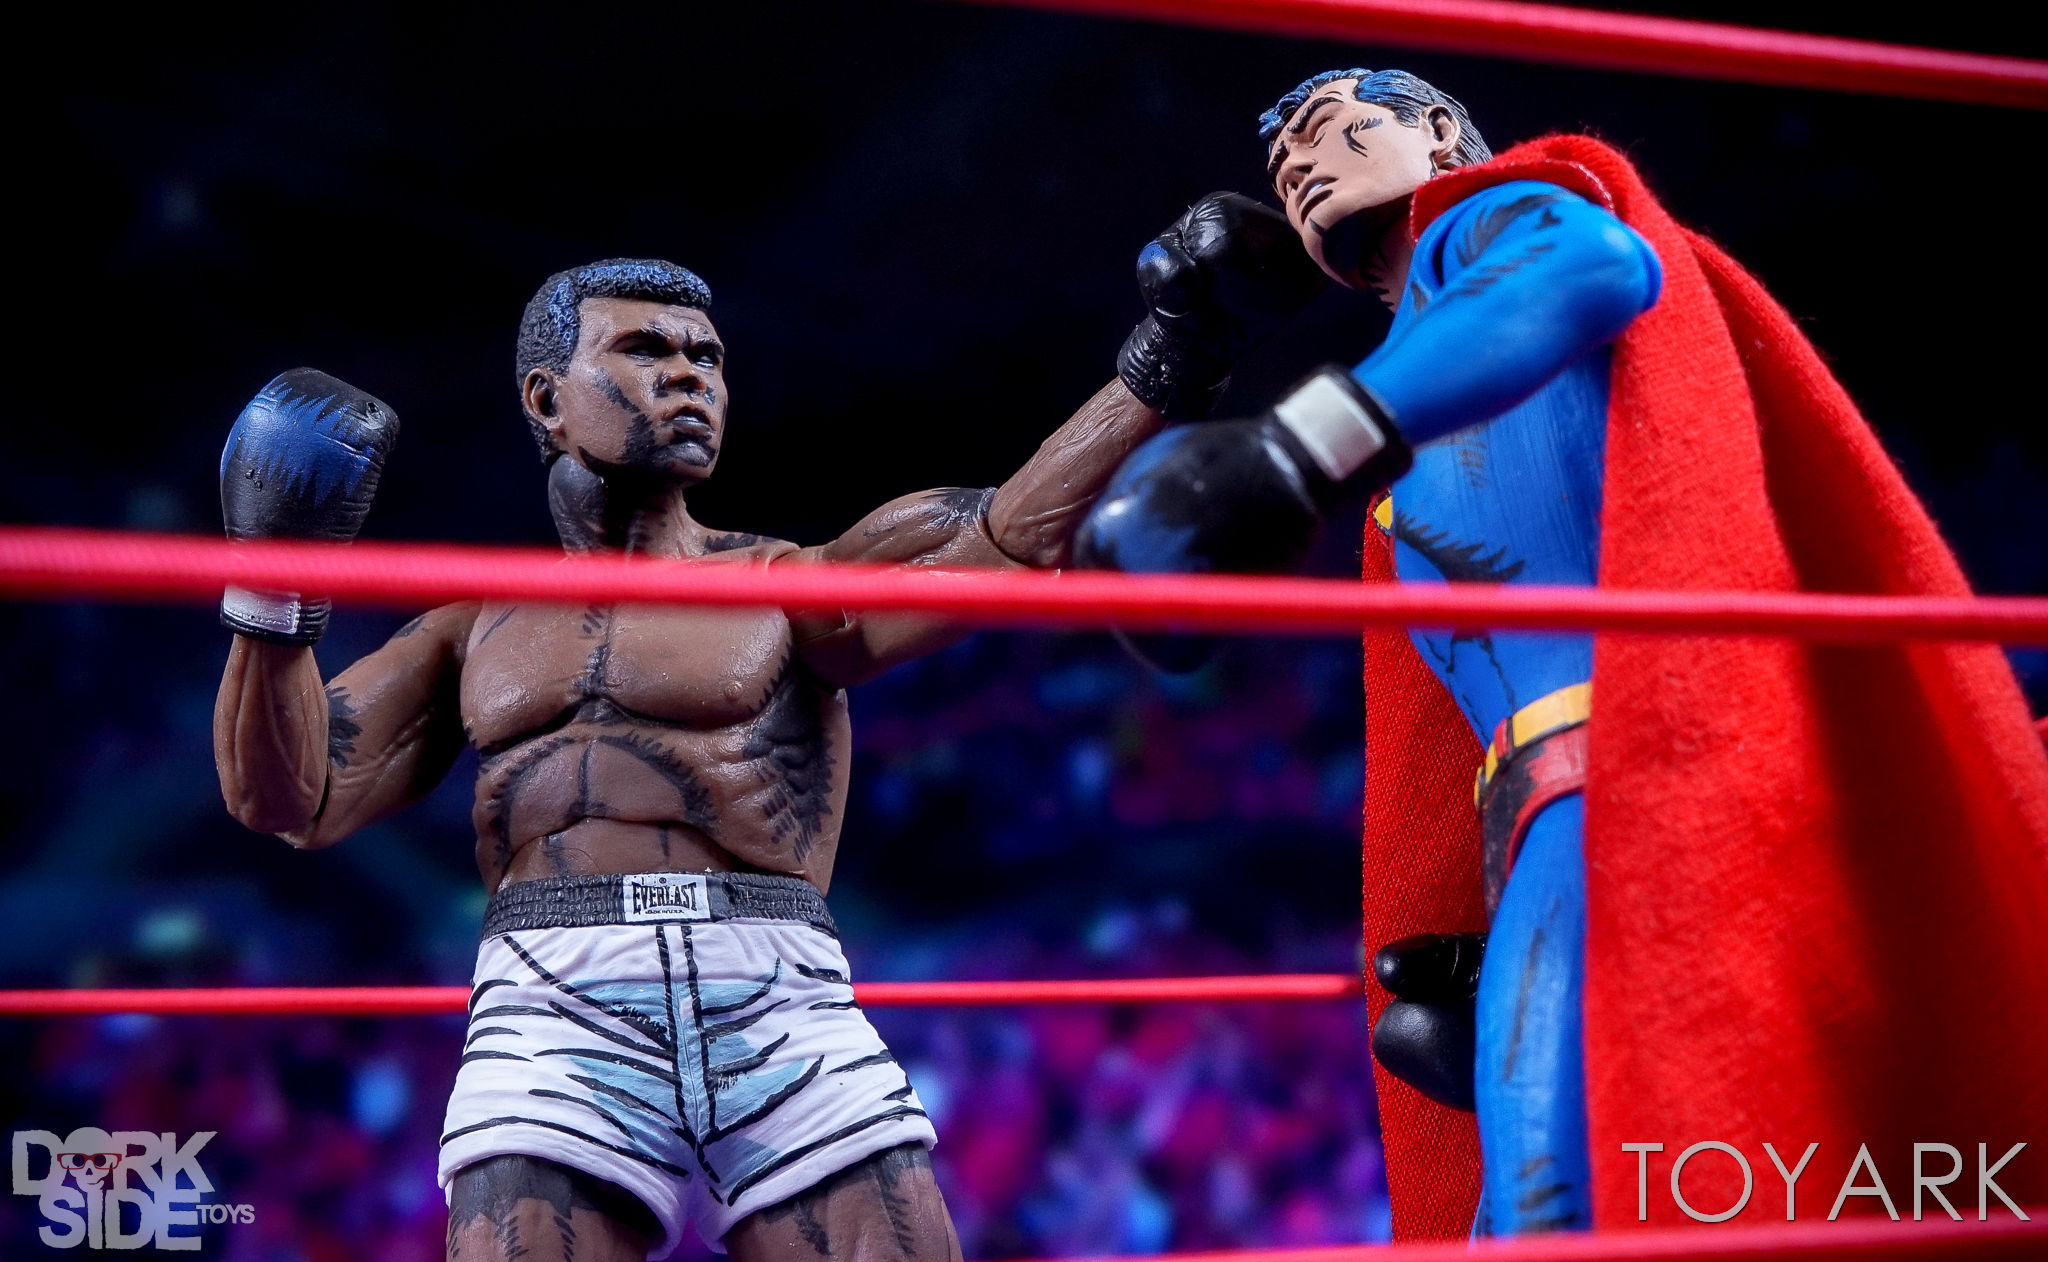 http://news.toyark.com/wp-content/uploads/sites/4/2017/02/NECA-Ali-vs-Superman-Set-020.jpg